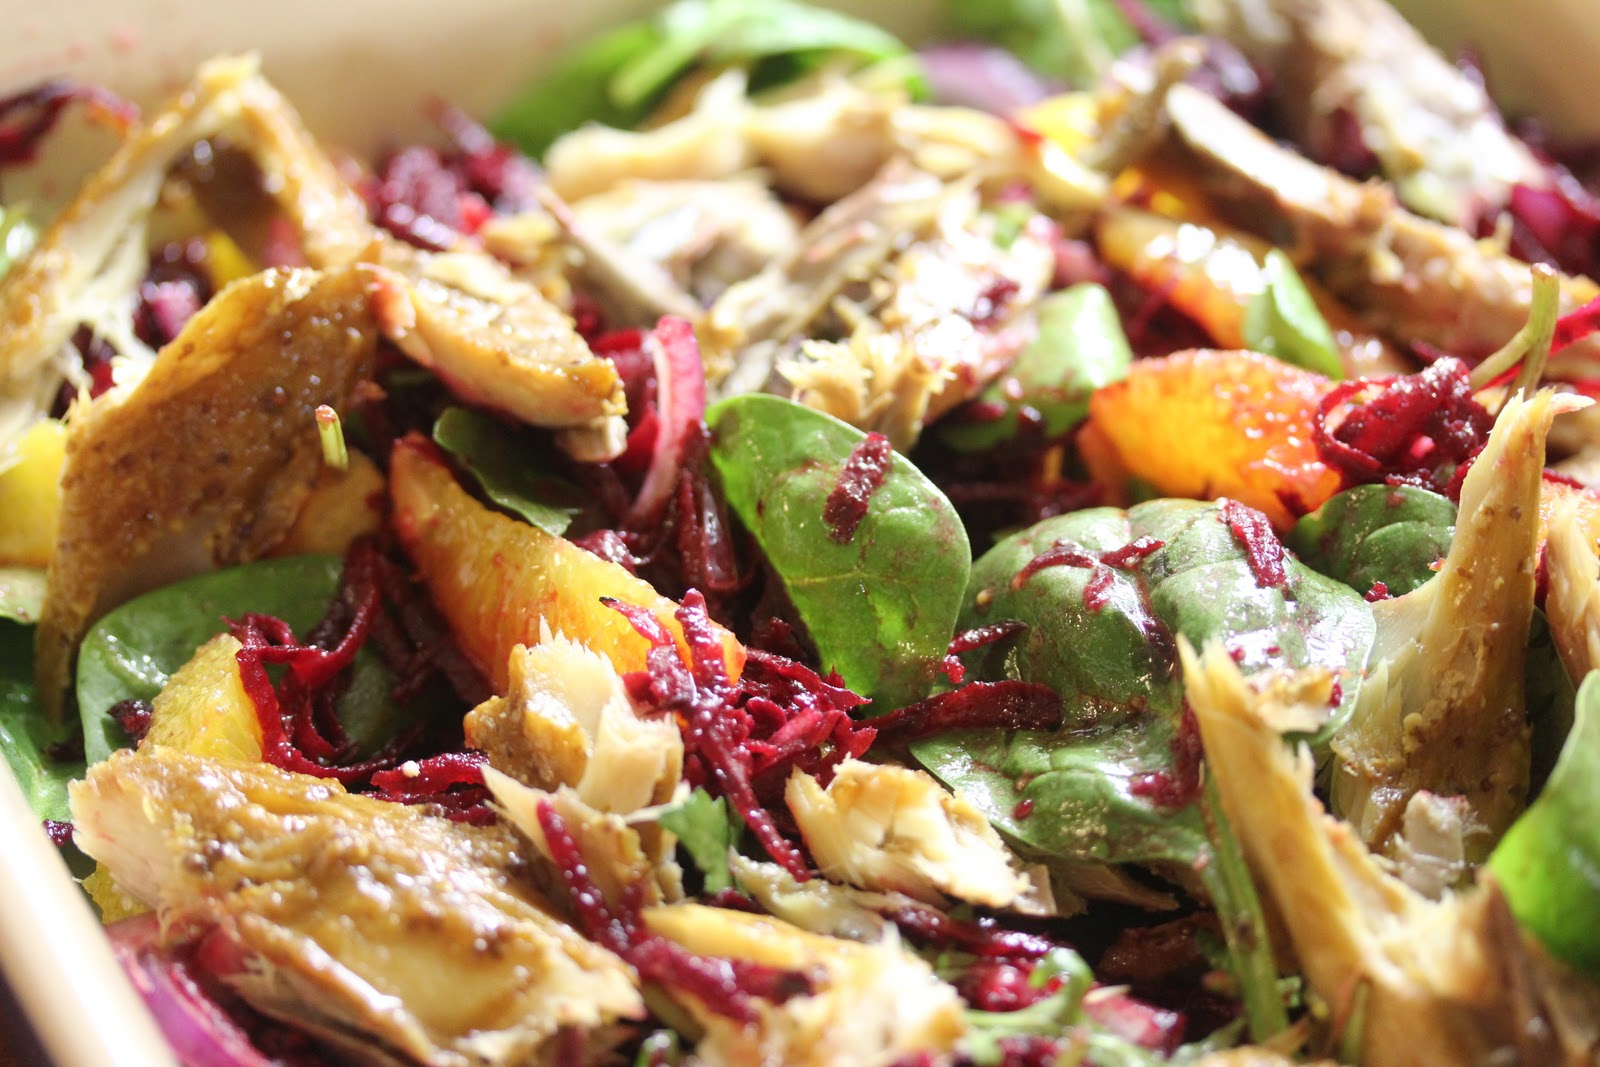 warm mackerel and beetroot salad